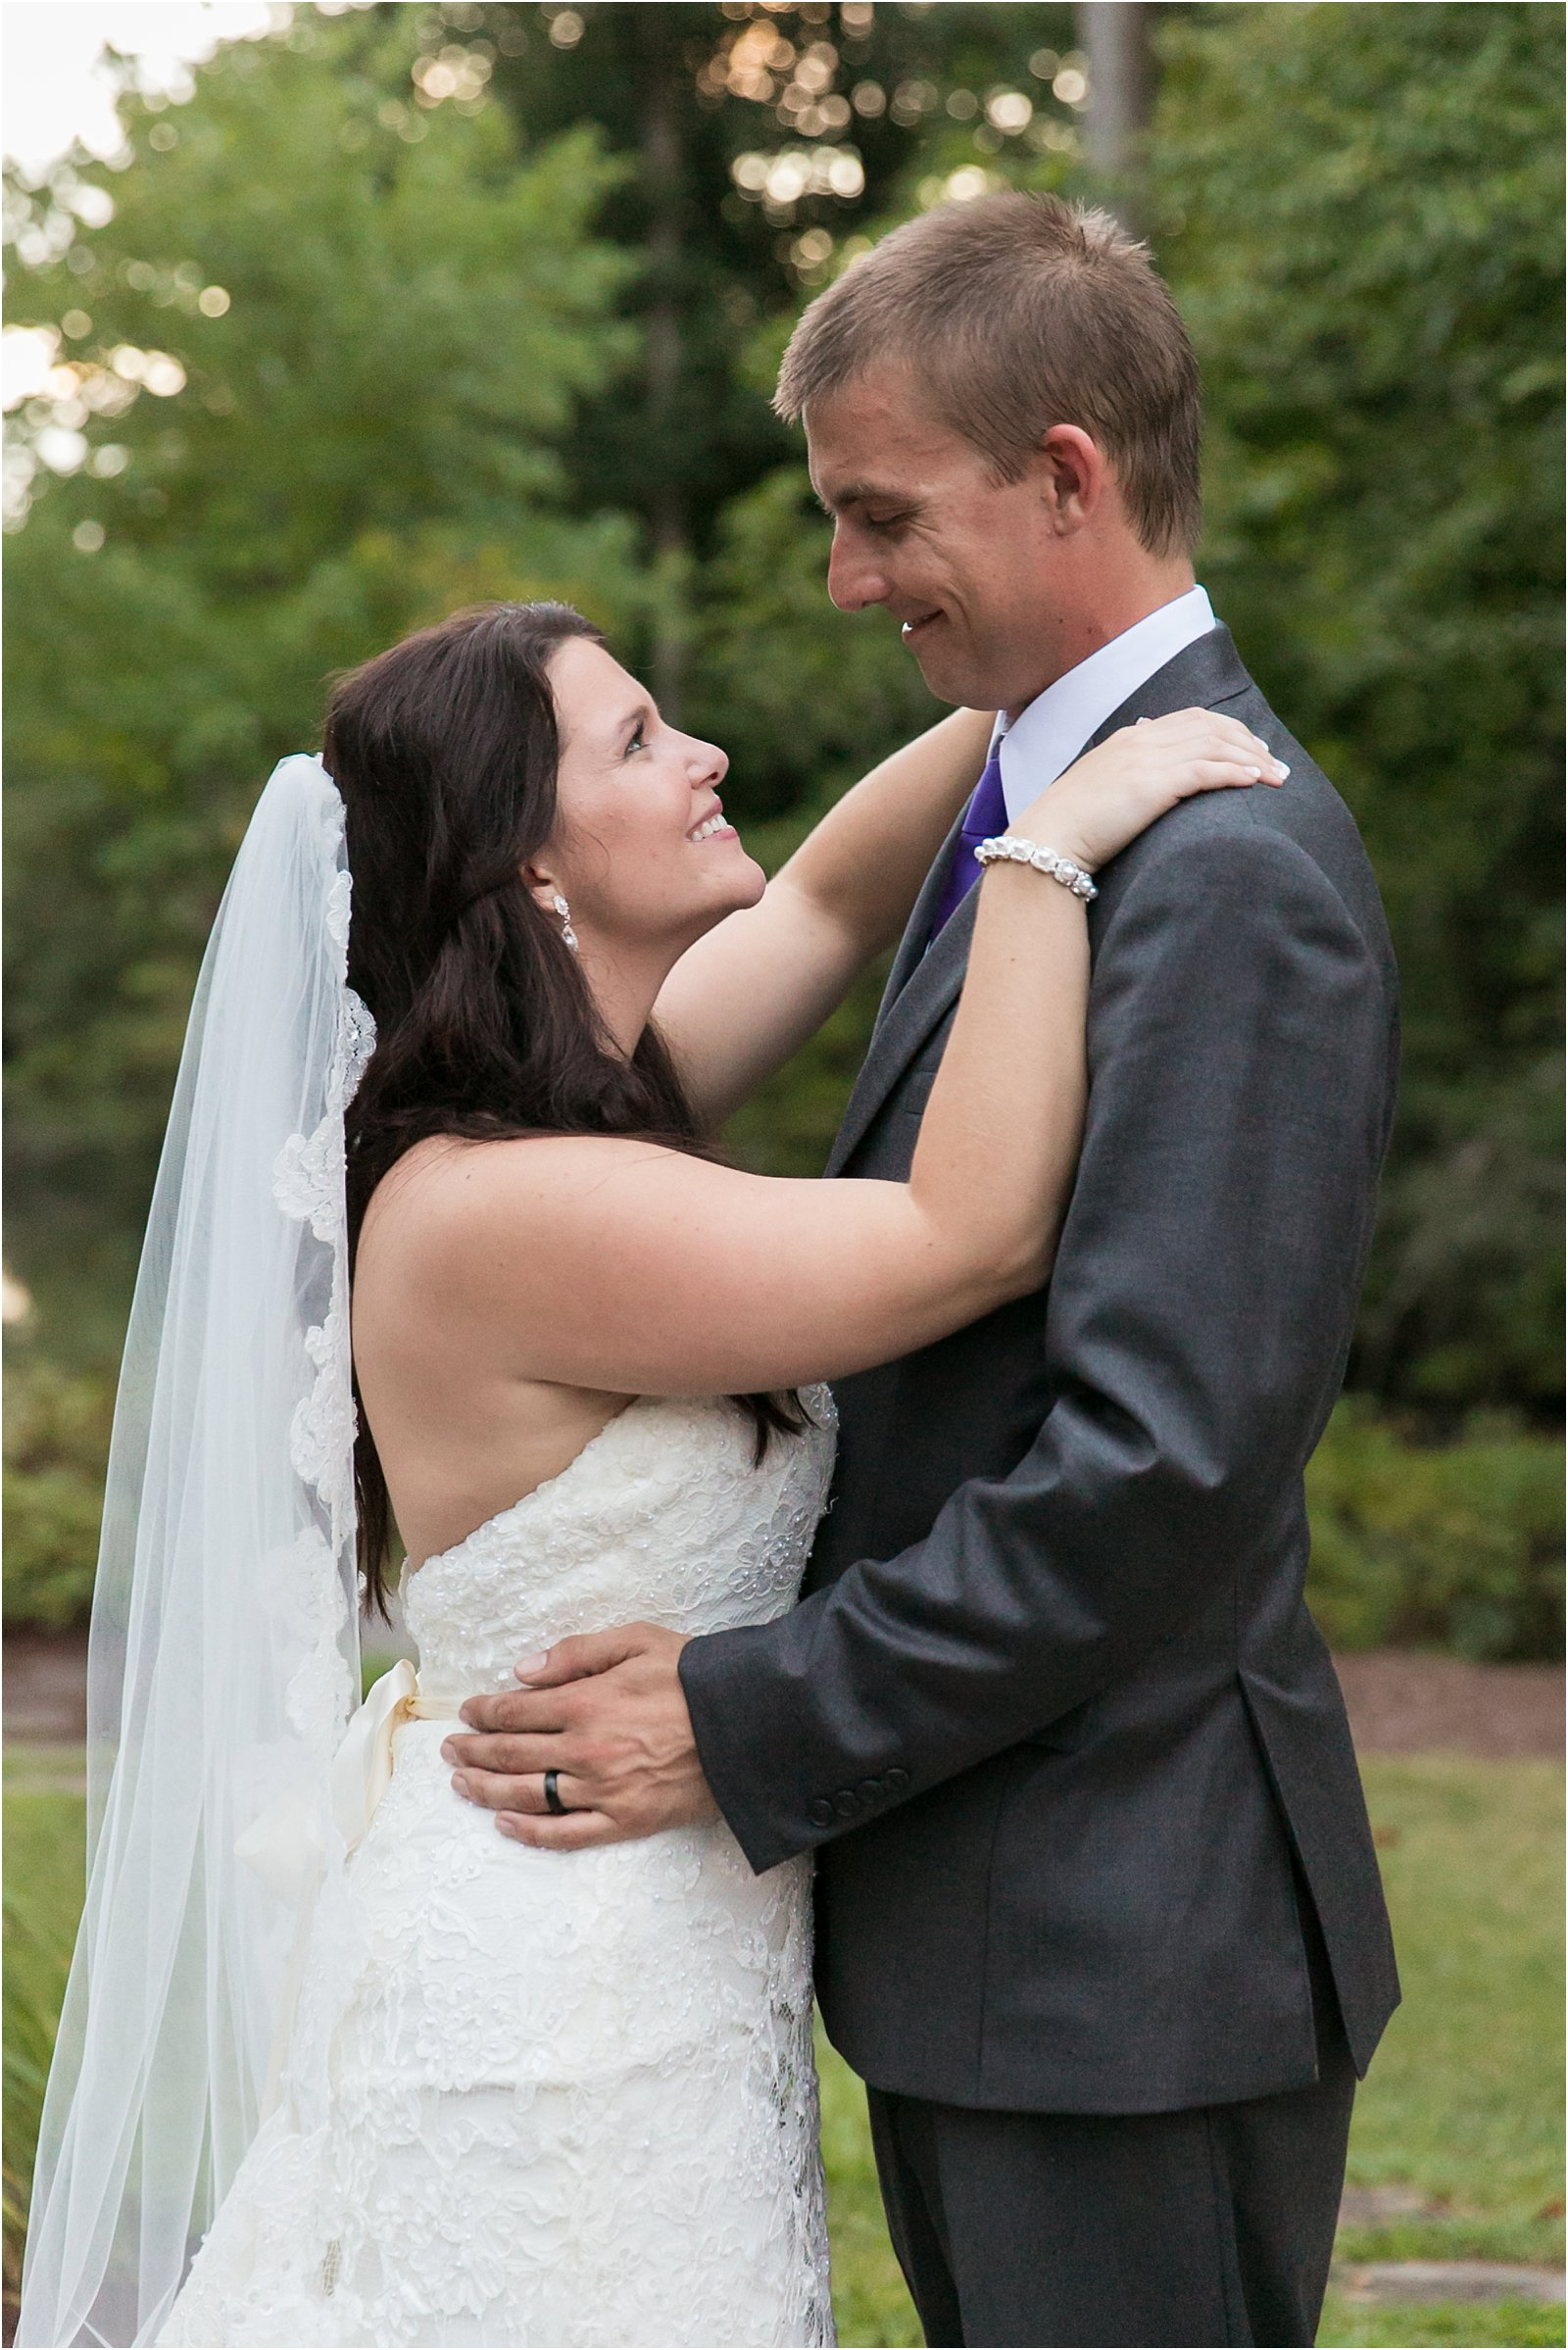 jessica_ryan_photography_bride_groom_suffolk_wedding_virginia_wedding_photography_hampton_roads_0262